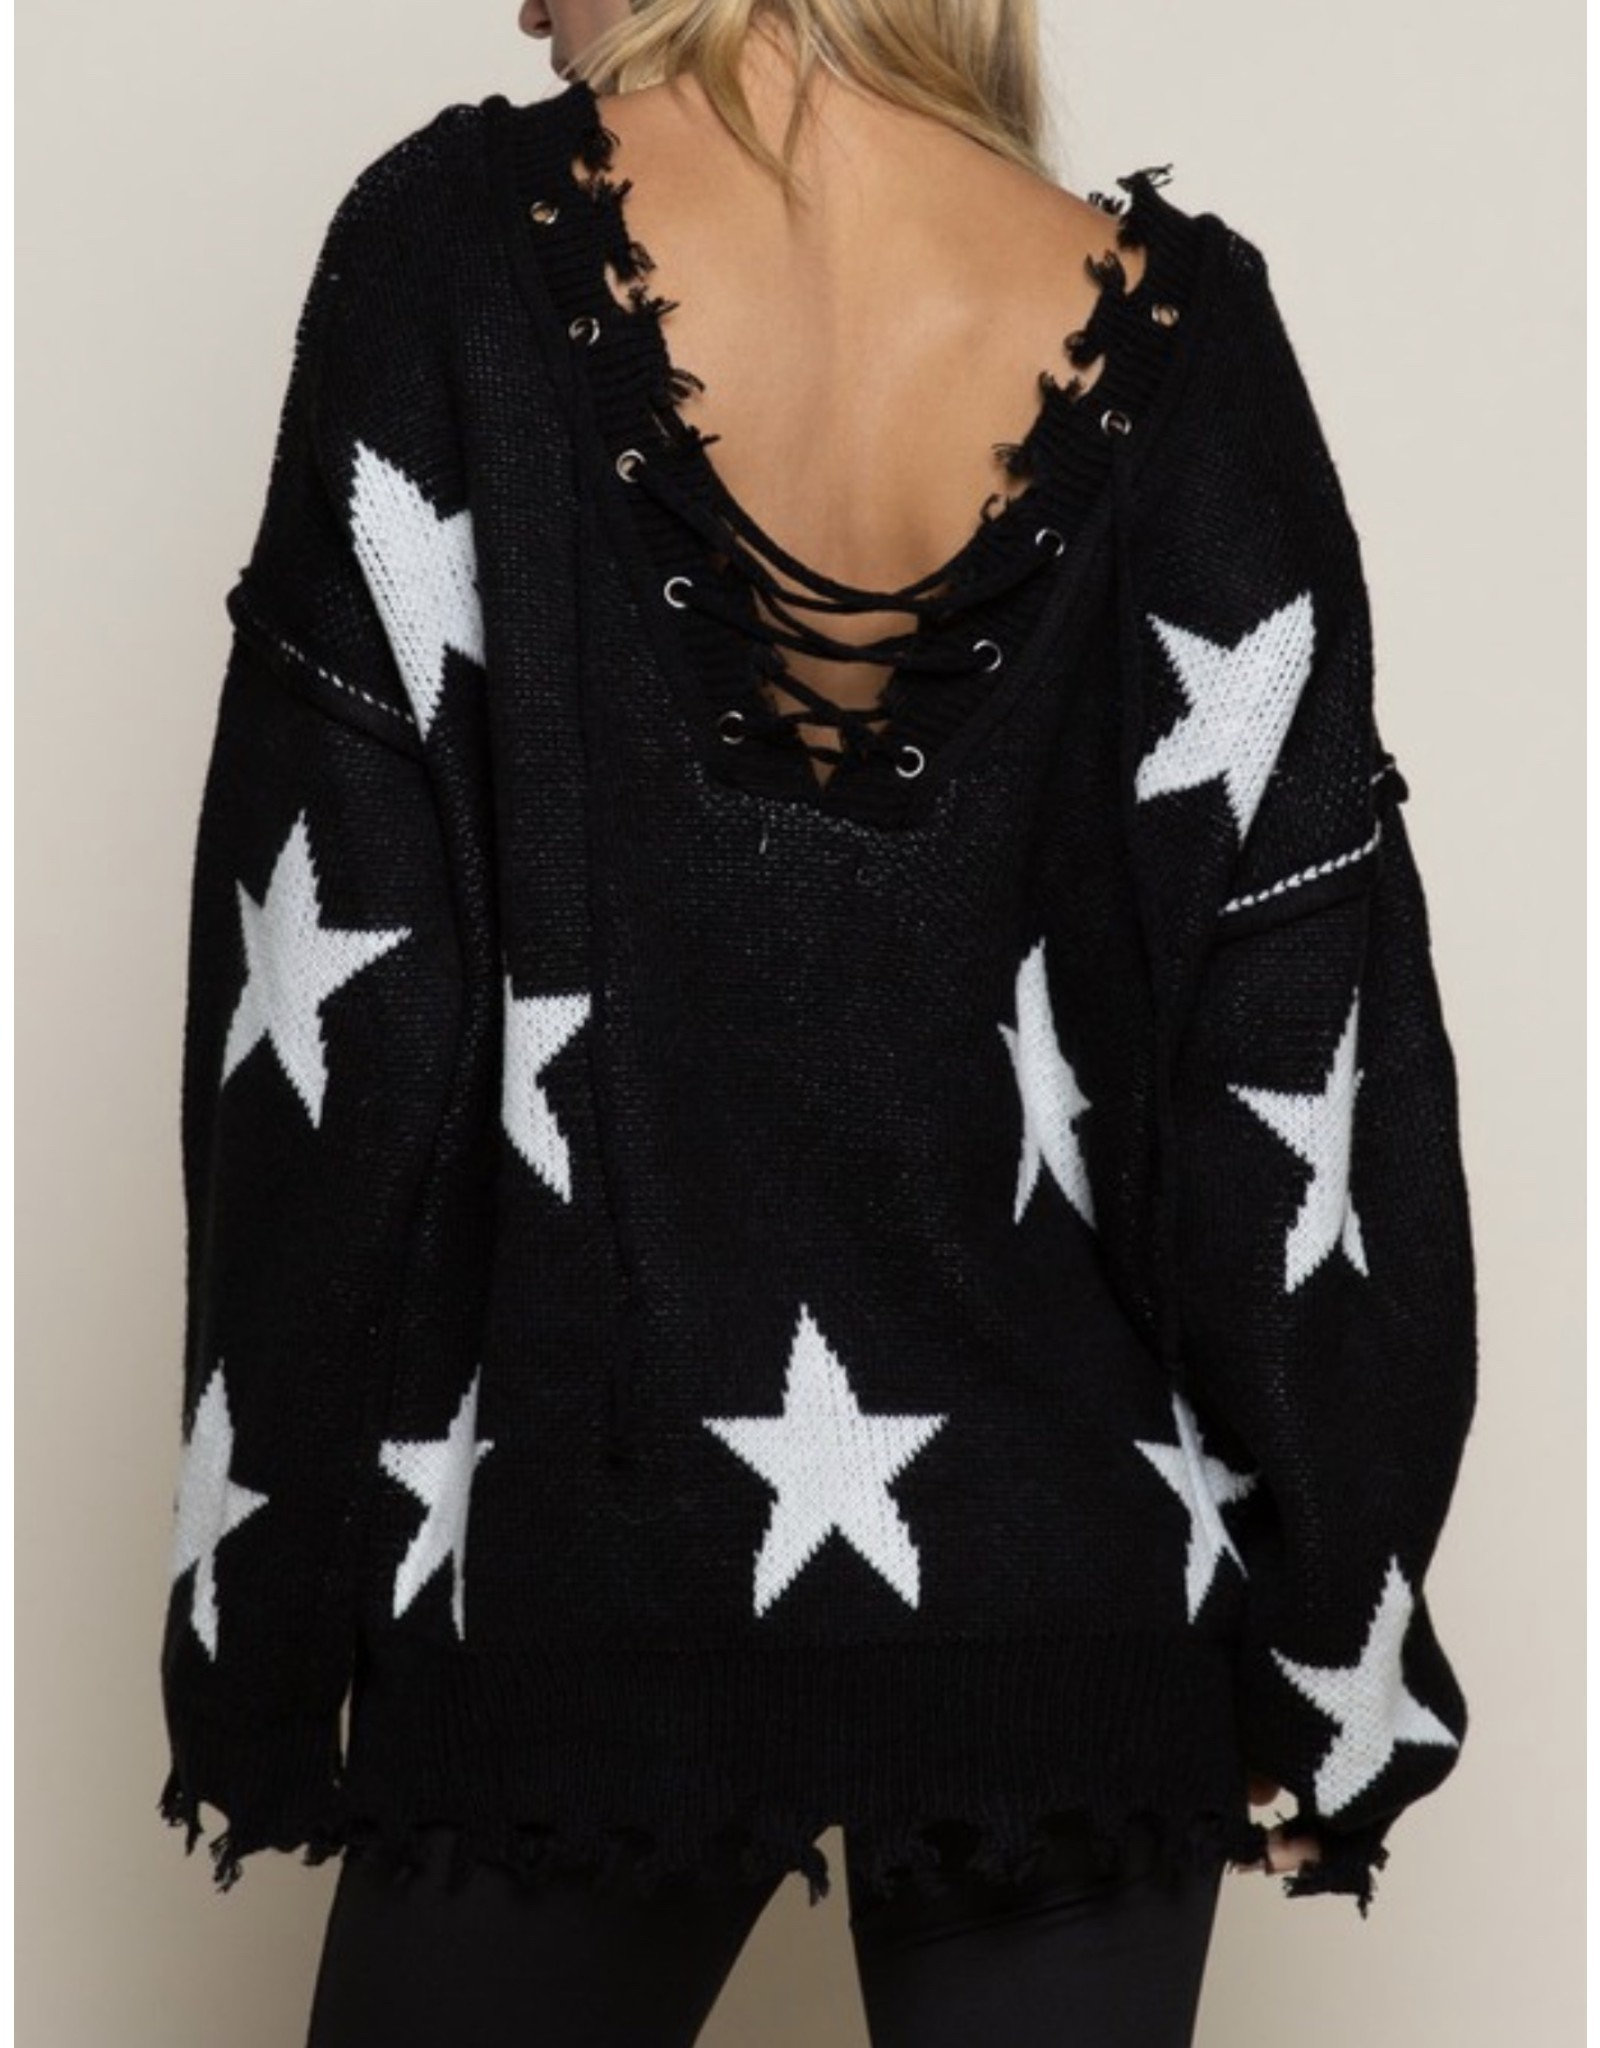 Lace Up Star Sweater - Black